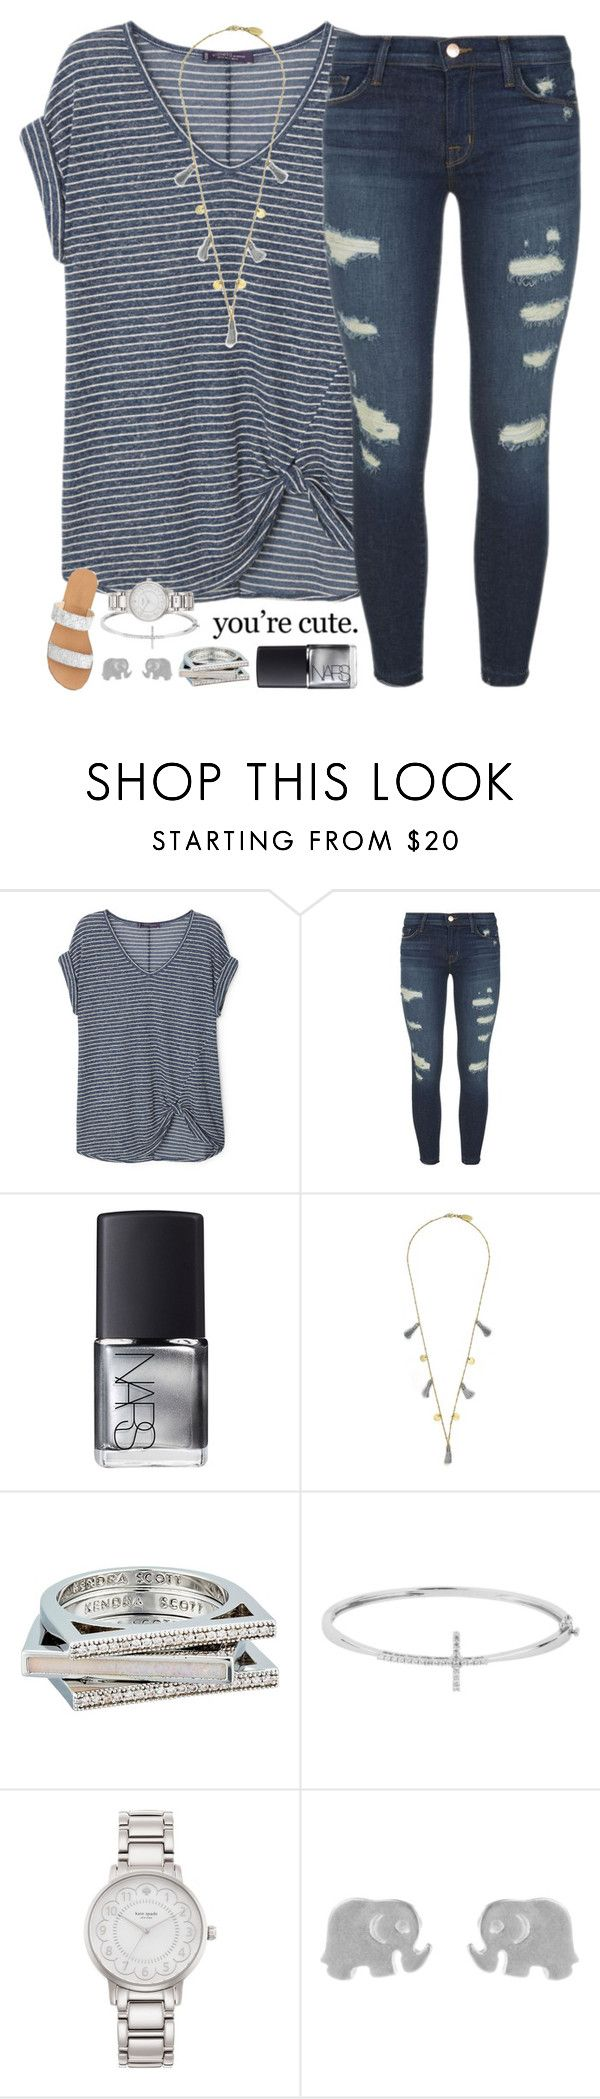 """""""You're cute."""" by lilypackard ❤ liked on Polyvore featuring Violeta by Mango, J Brand, NARS Cosmetics, Feather & Stone, Kendra Scott, Reeds Jewelers, Kate Spade, Dogeared and J.Crew"""